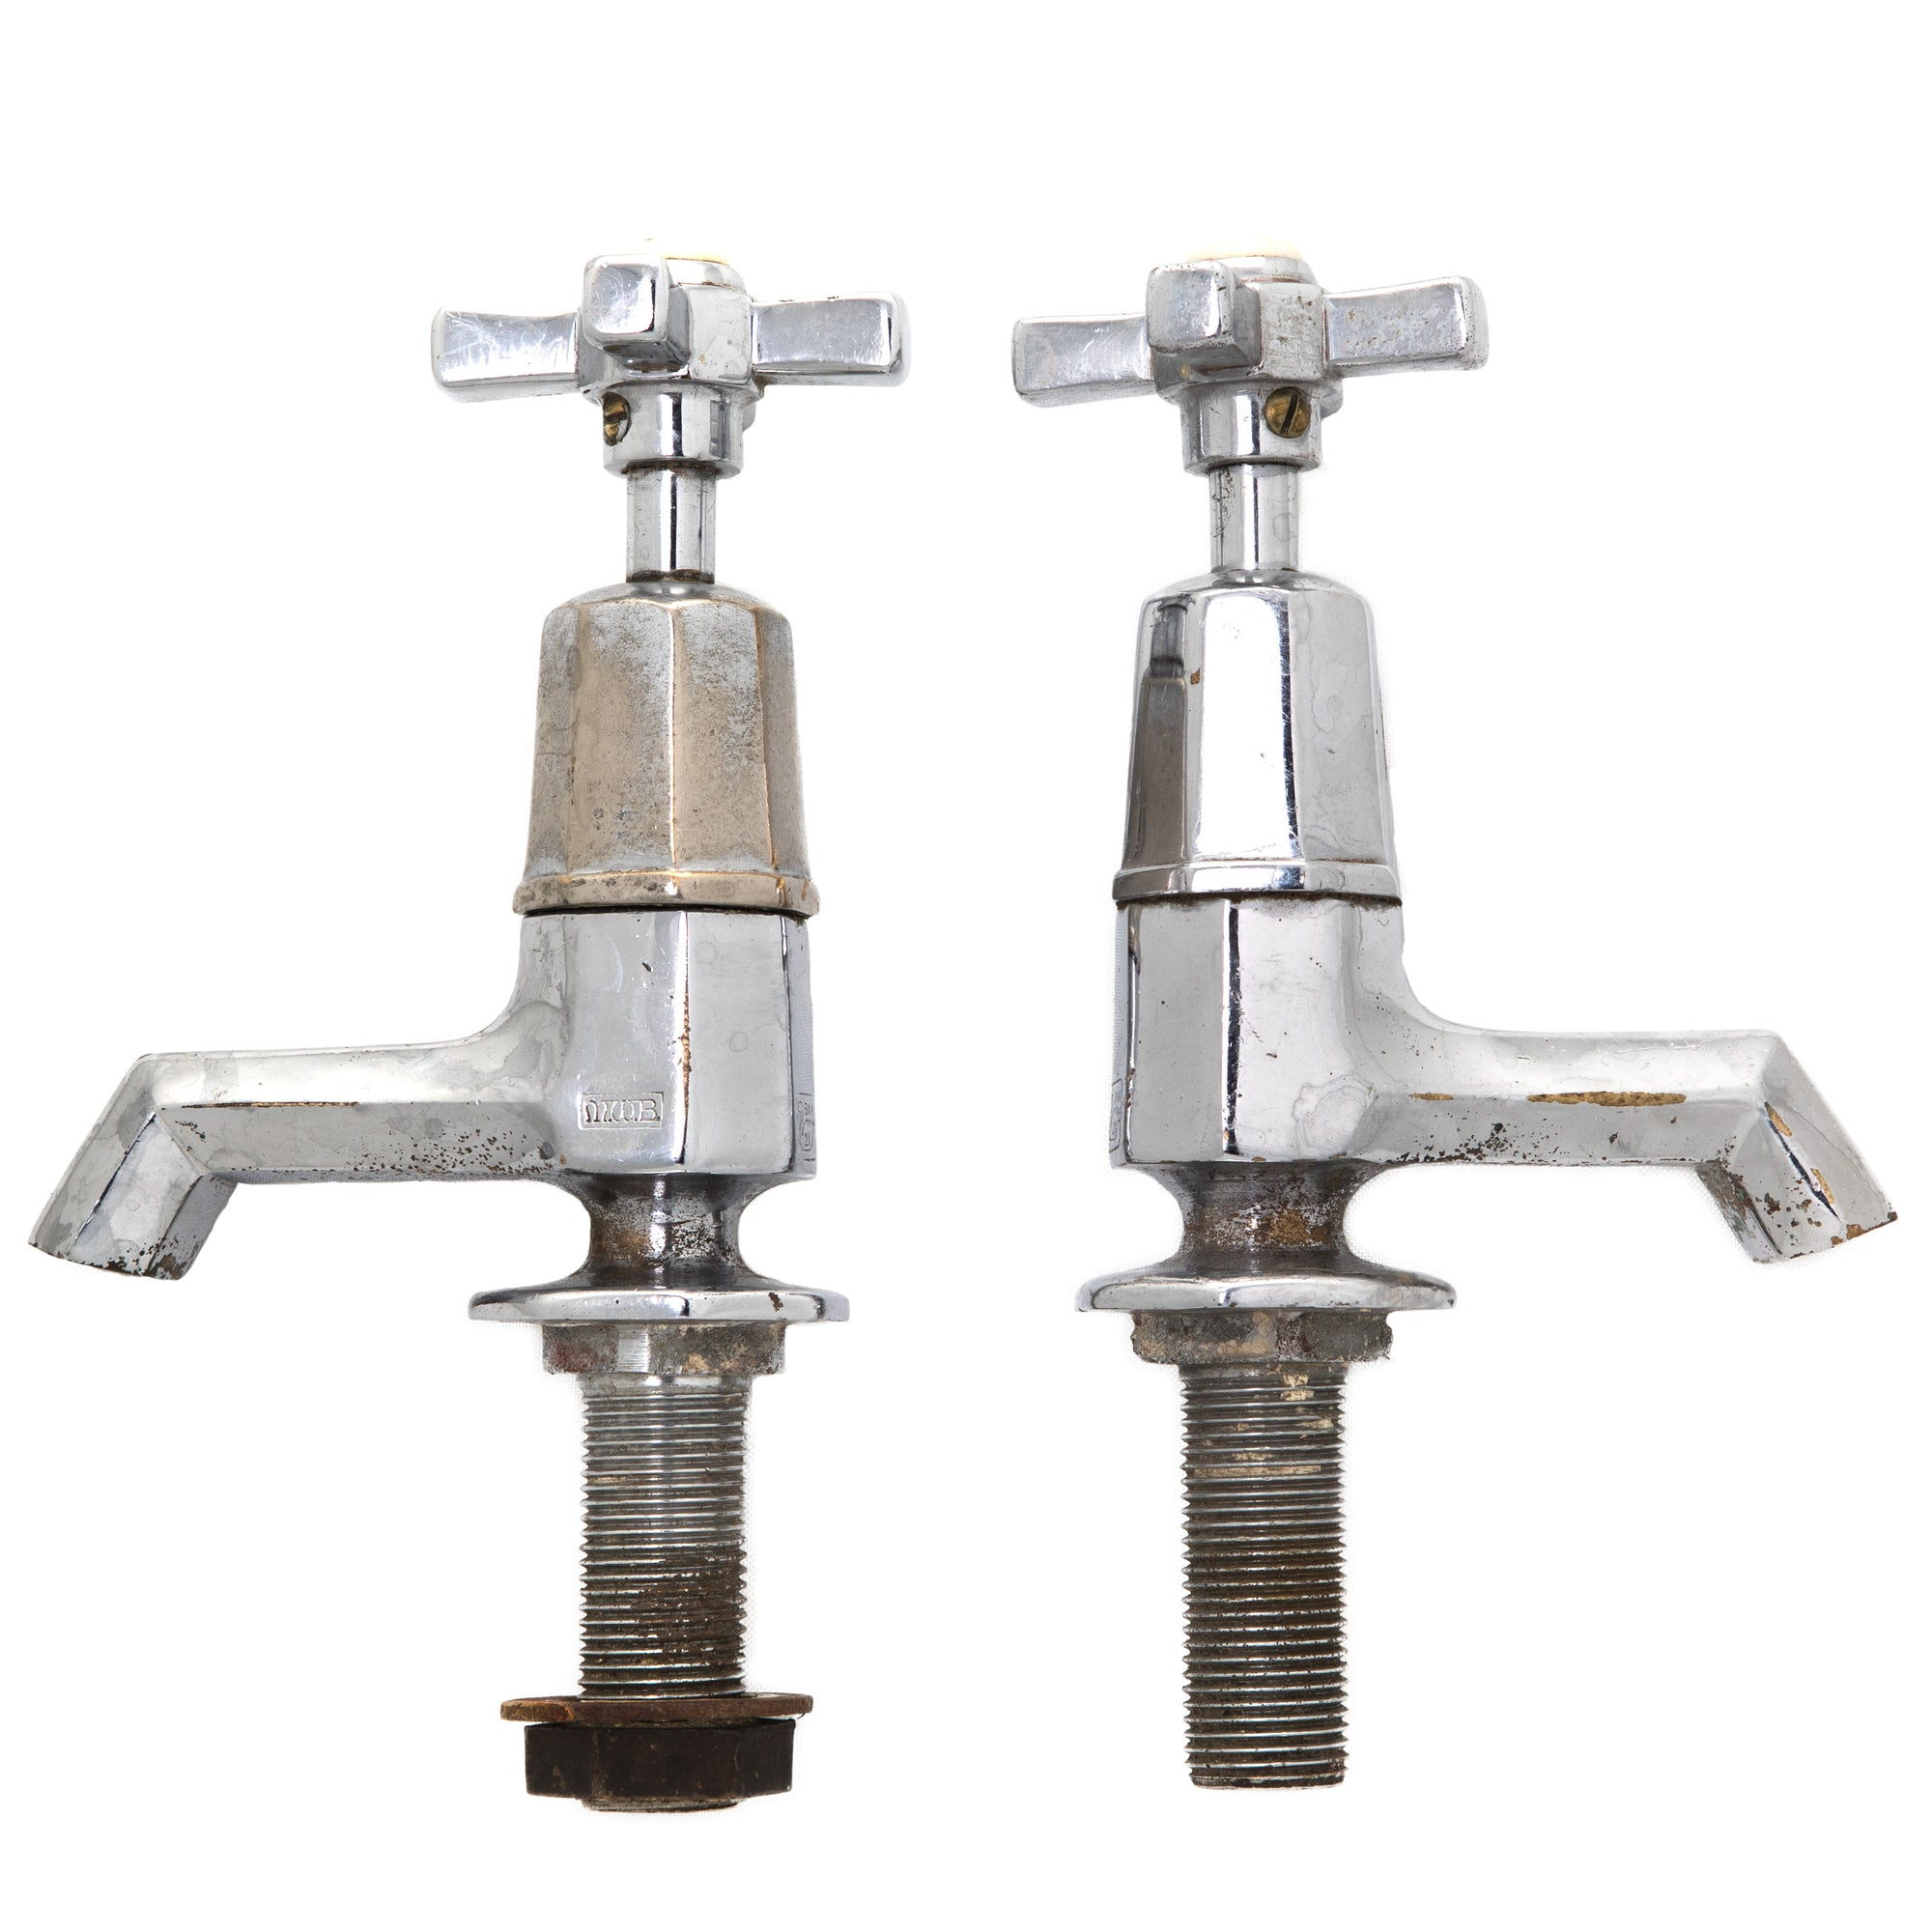 Pair of Reclaimed Art Deco Chrome Taps